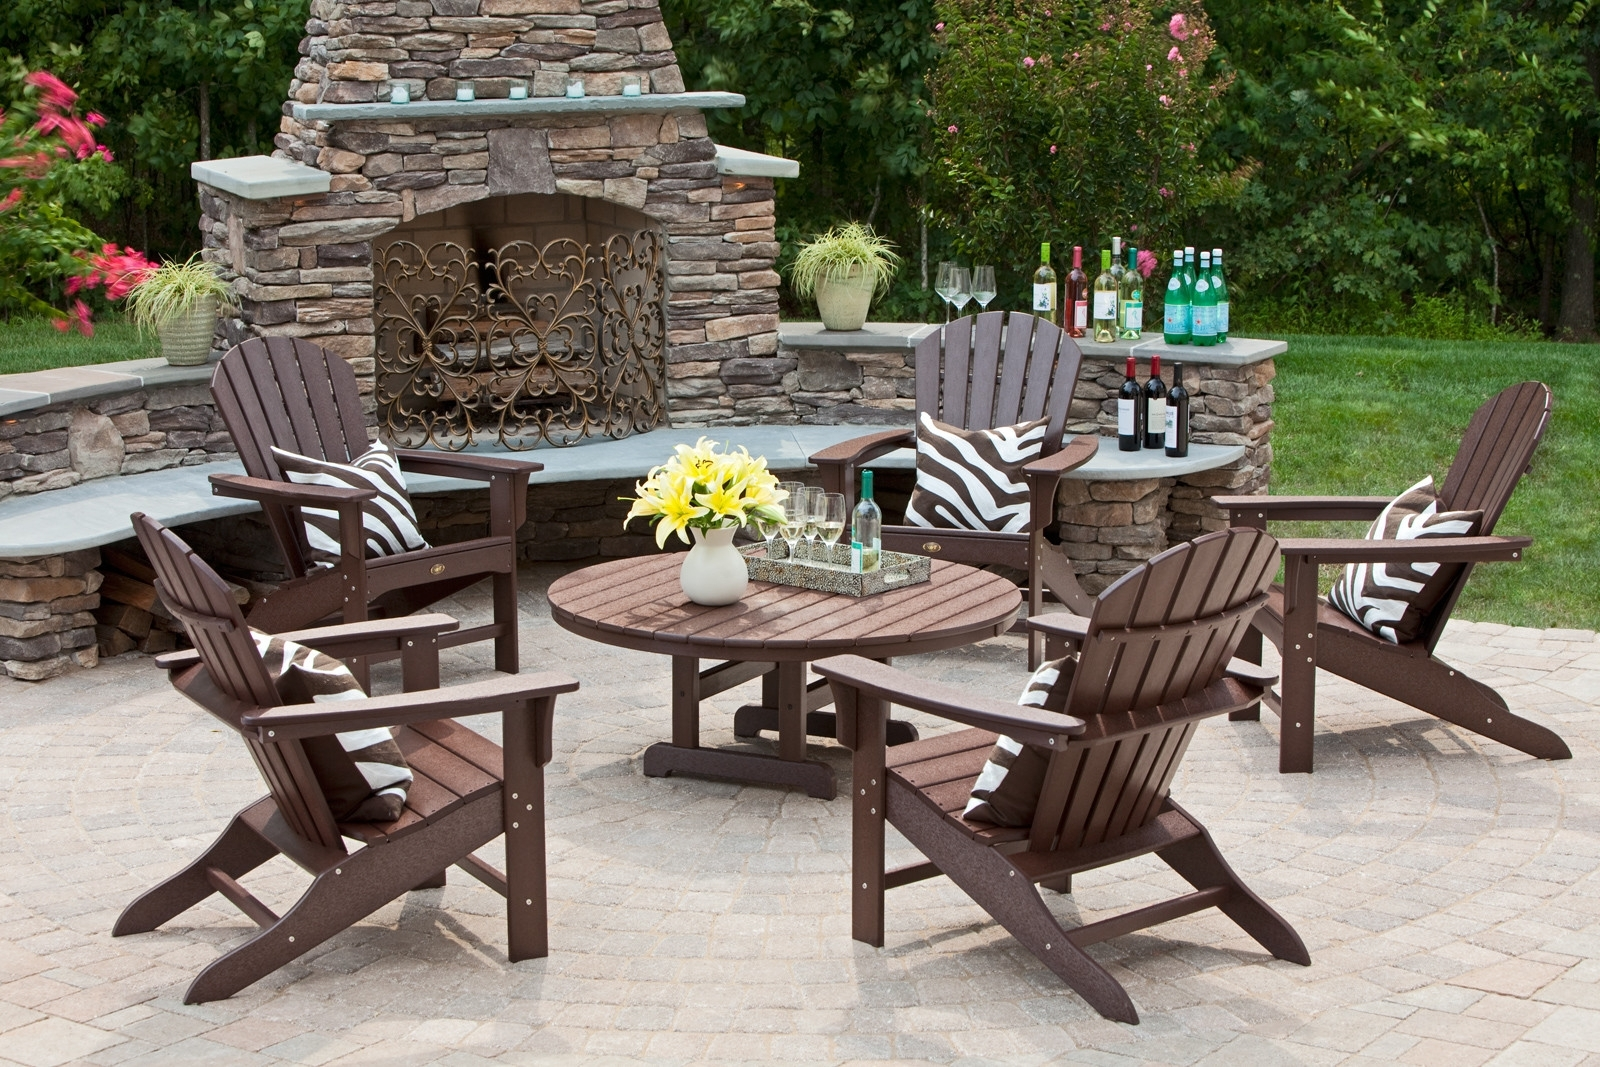 2018 Patio Conversation Sets Costco Best Patio Furniture Under $500 4 Pertaining To Patio Conversation Sets Under $ (View 4 of 20)